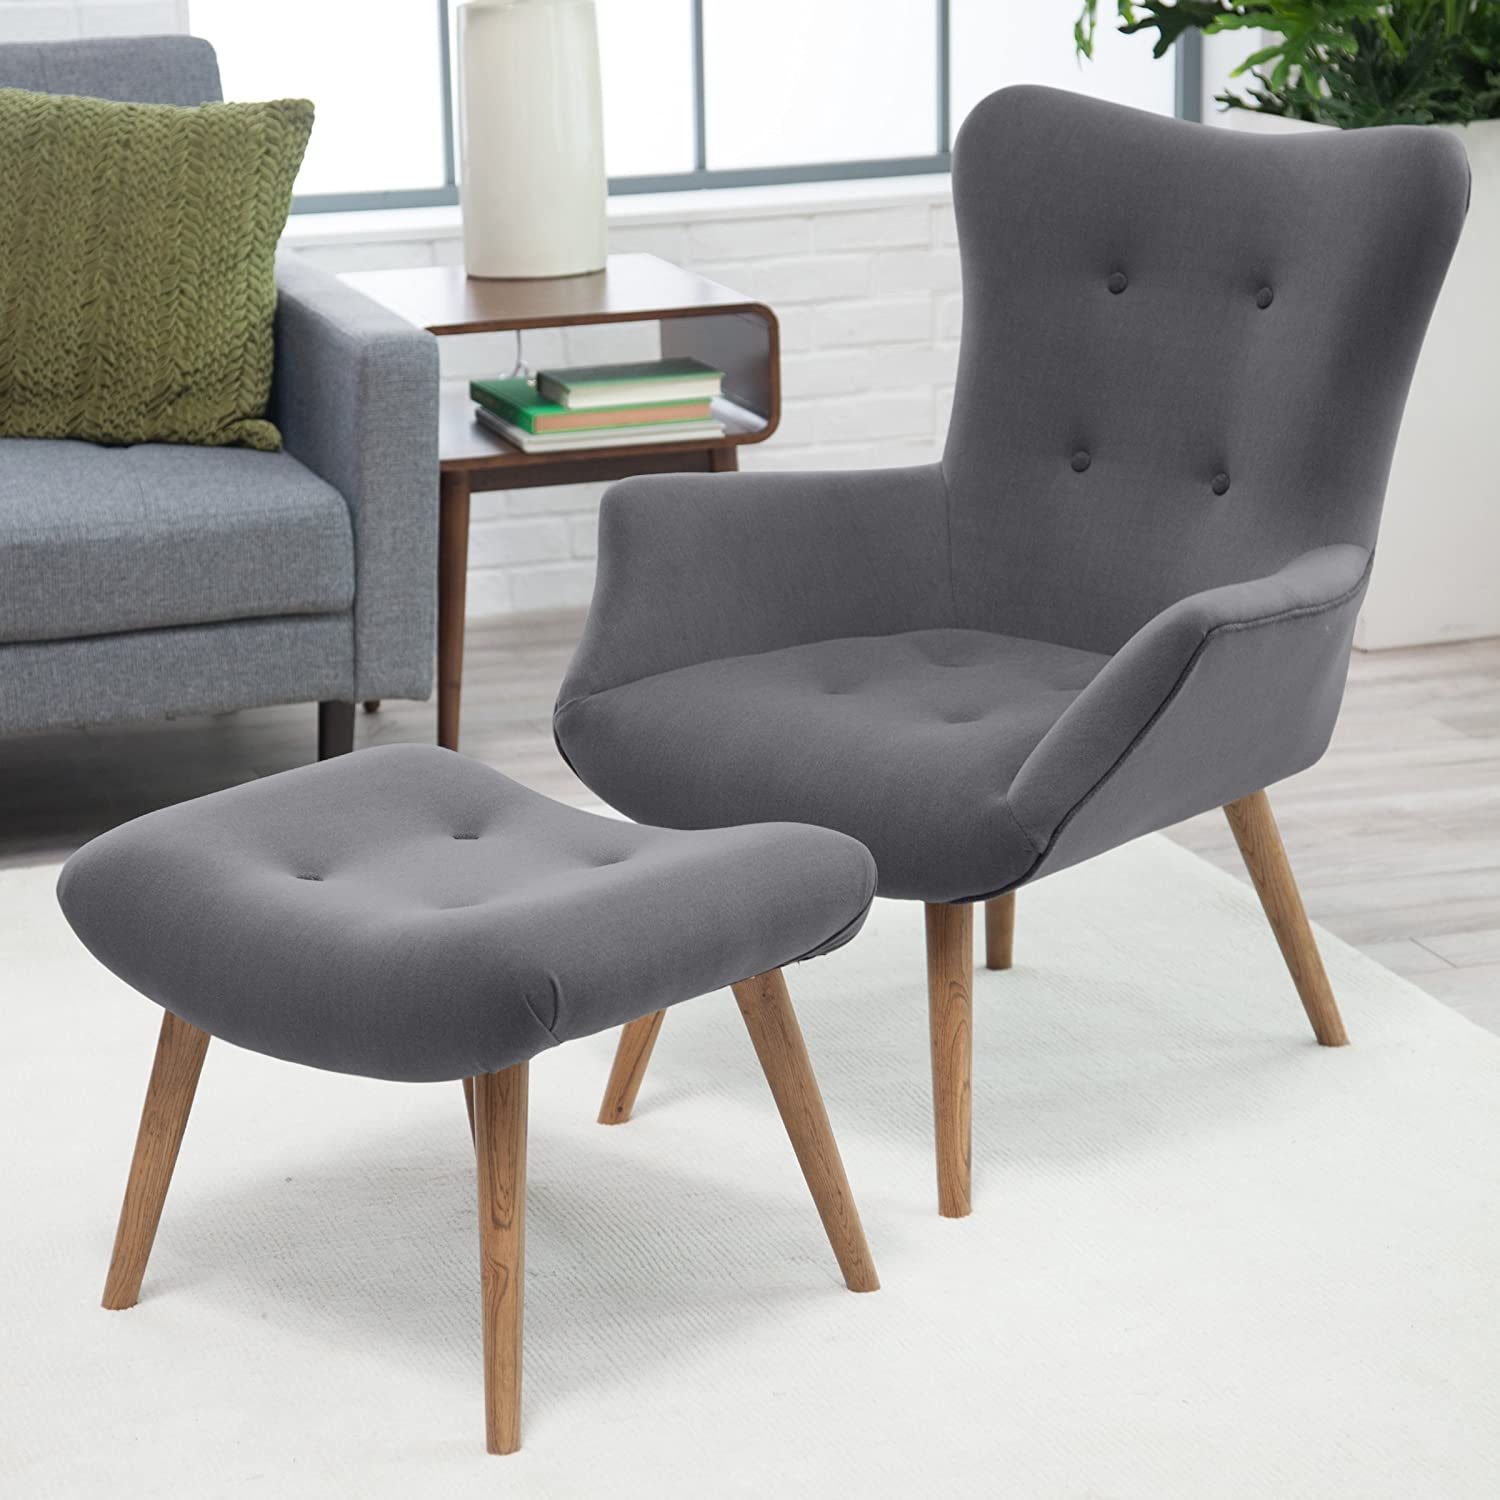 Amazon.com: Belham Living Matthias Mid Century Modern Chair And Ottoman:  Kitchen U0026 Dining